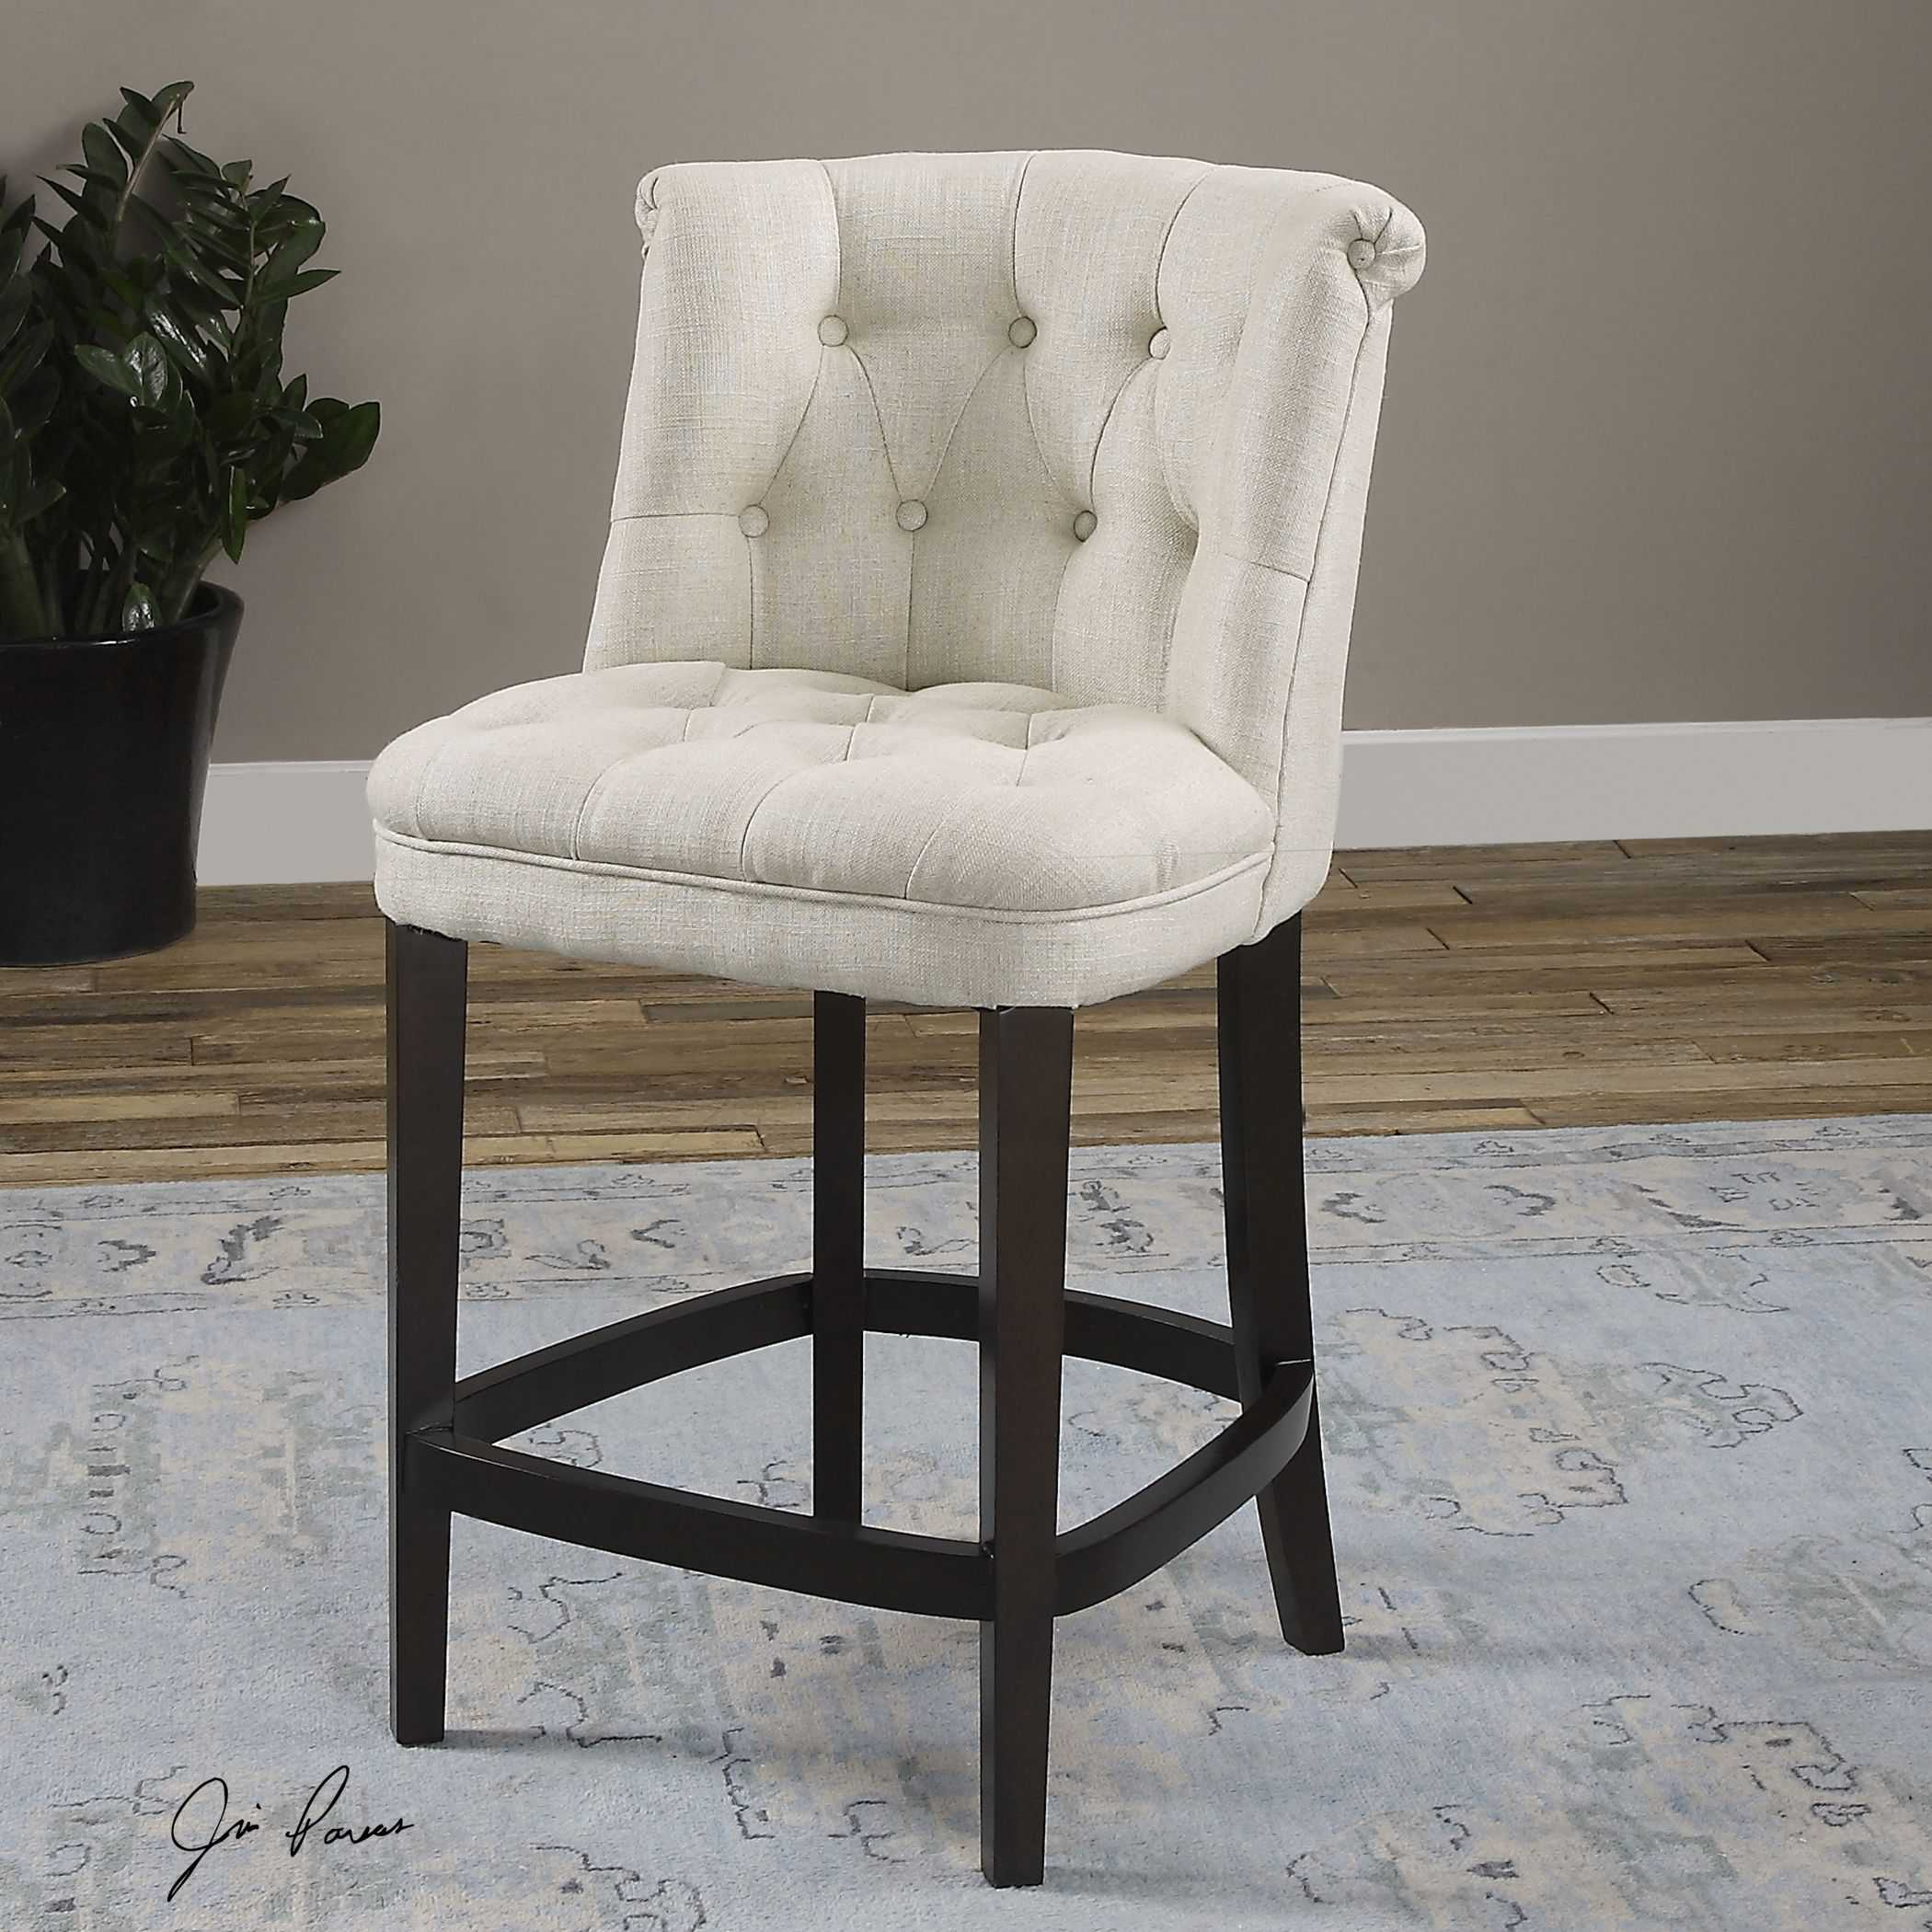 Uttermost Kavanagh Tufted White Linen Counter Stool Ut23236